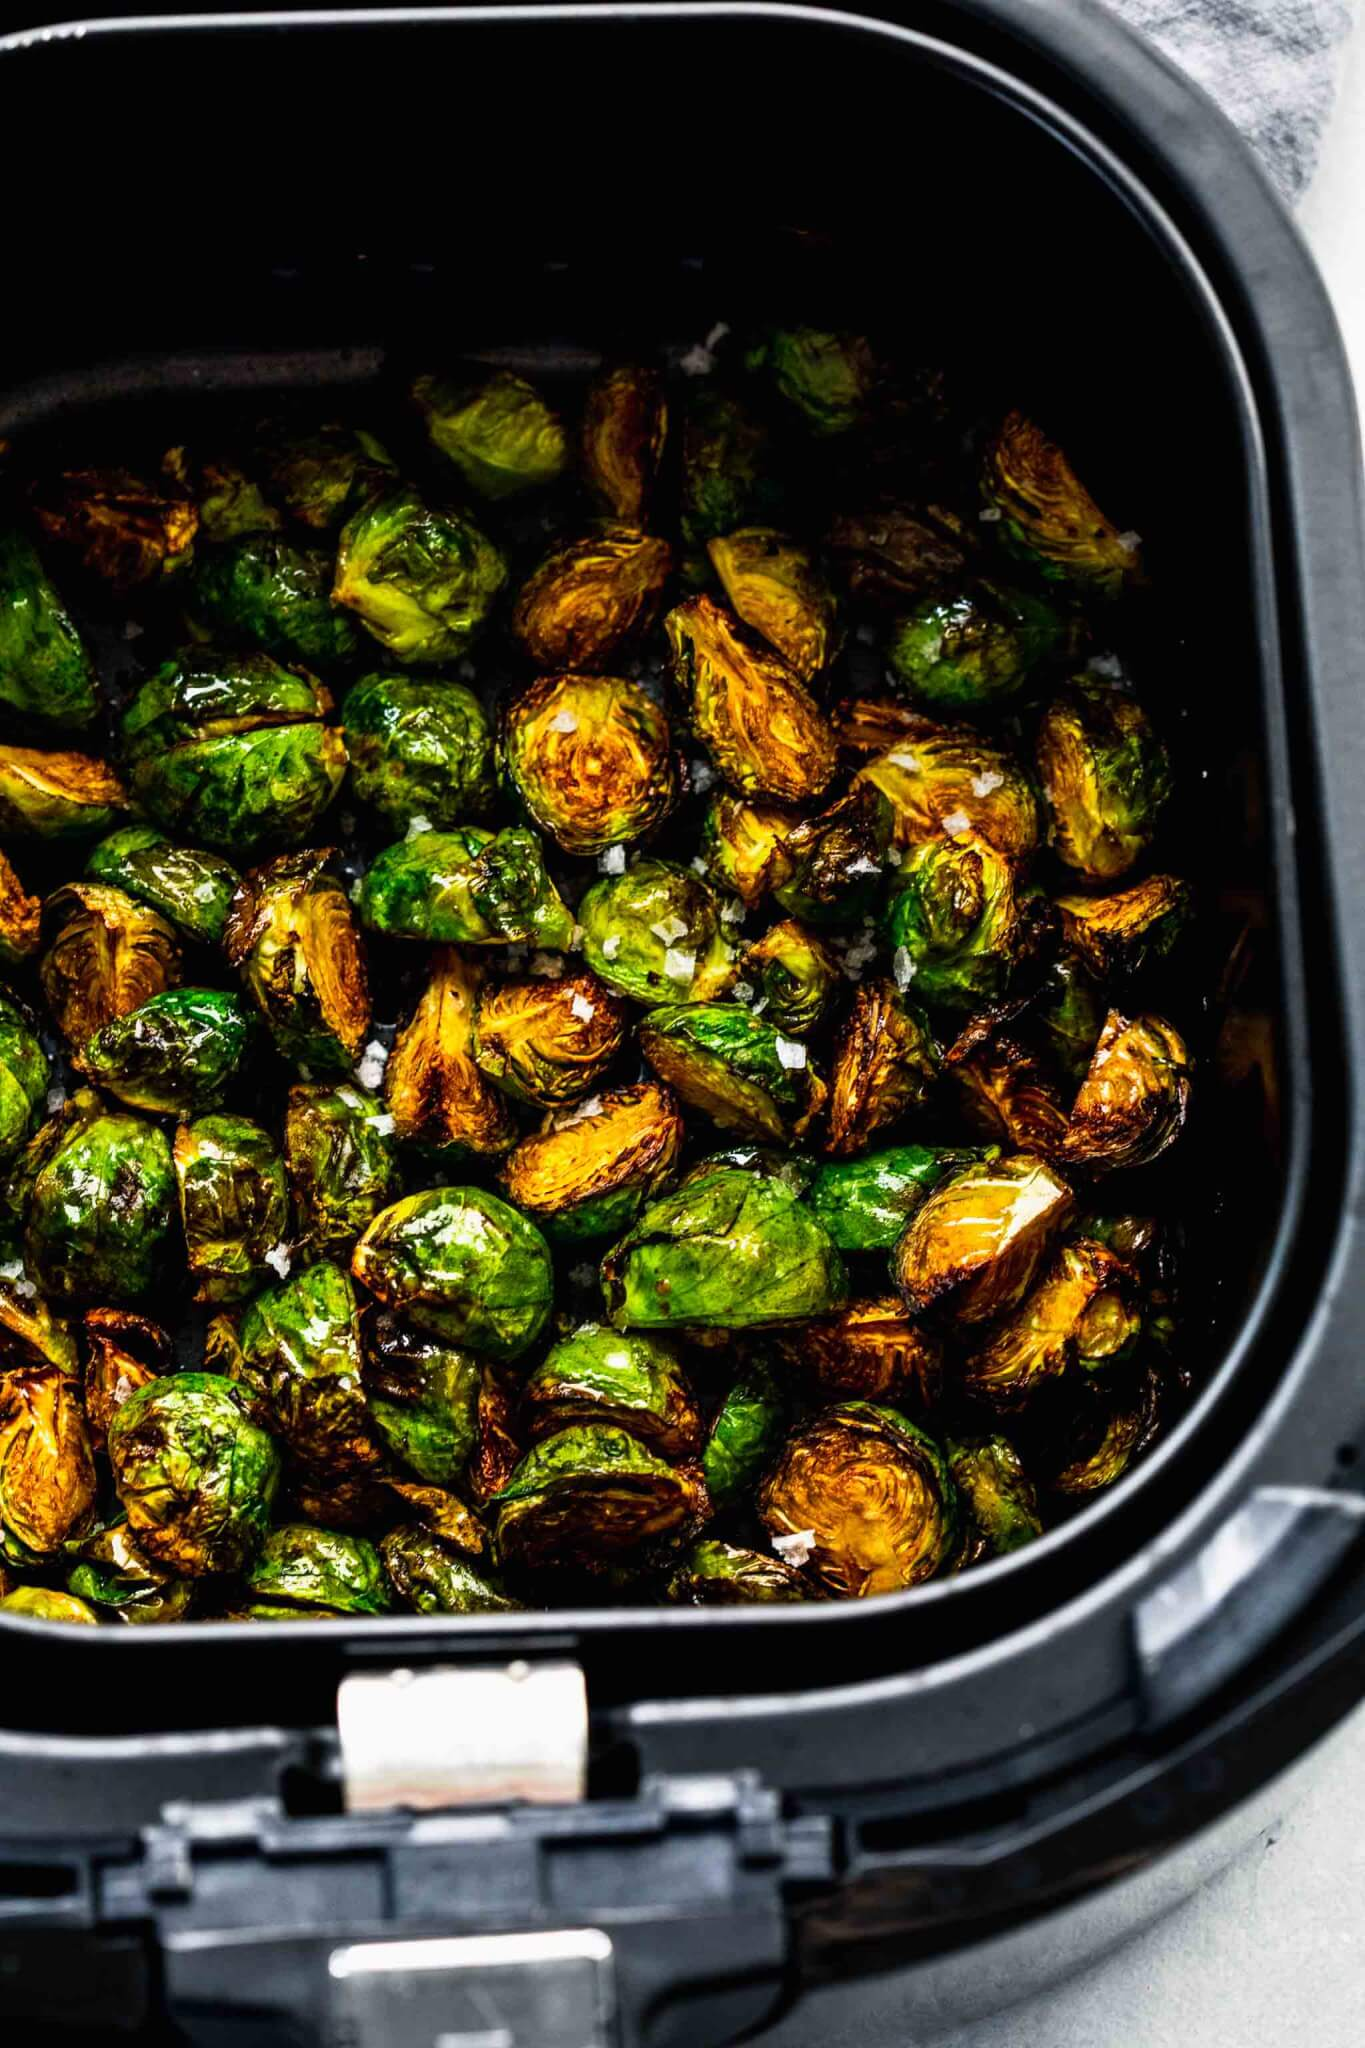 Cooked brussels sprouts in air fryer basket.